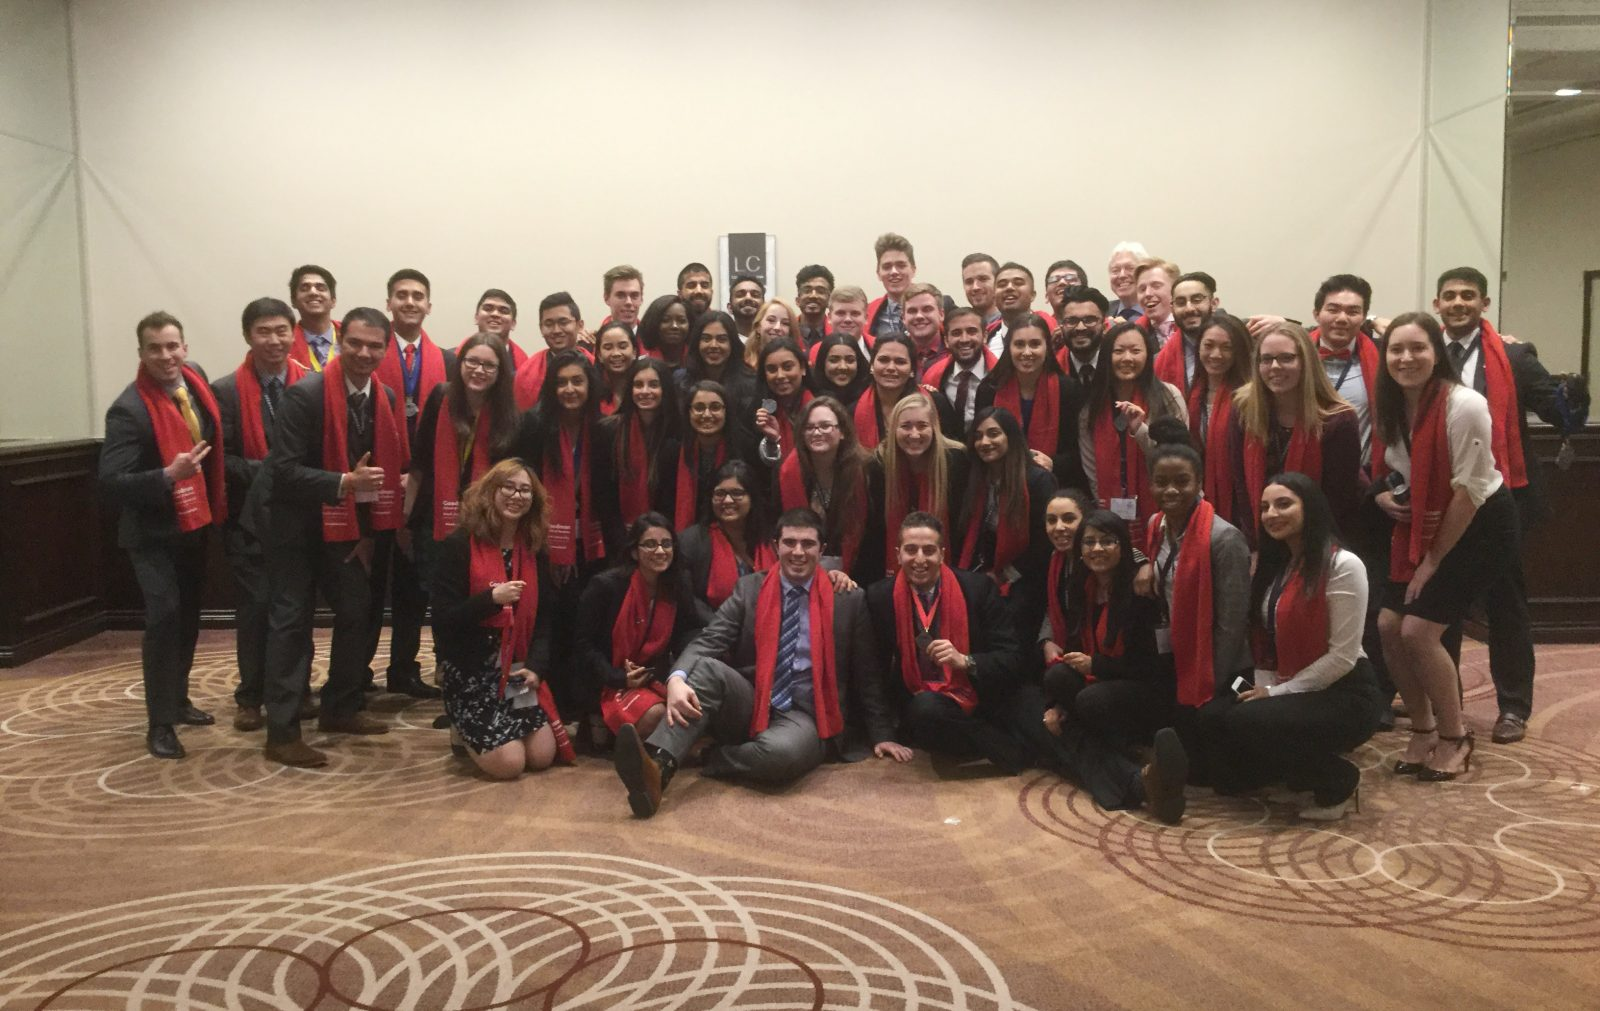 Goodman School of Business earns 18 medals at provincial